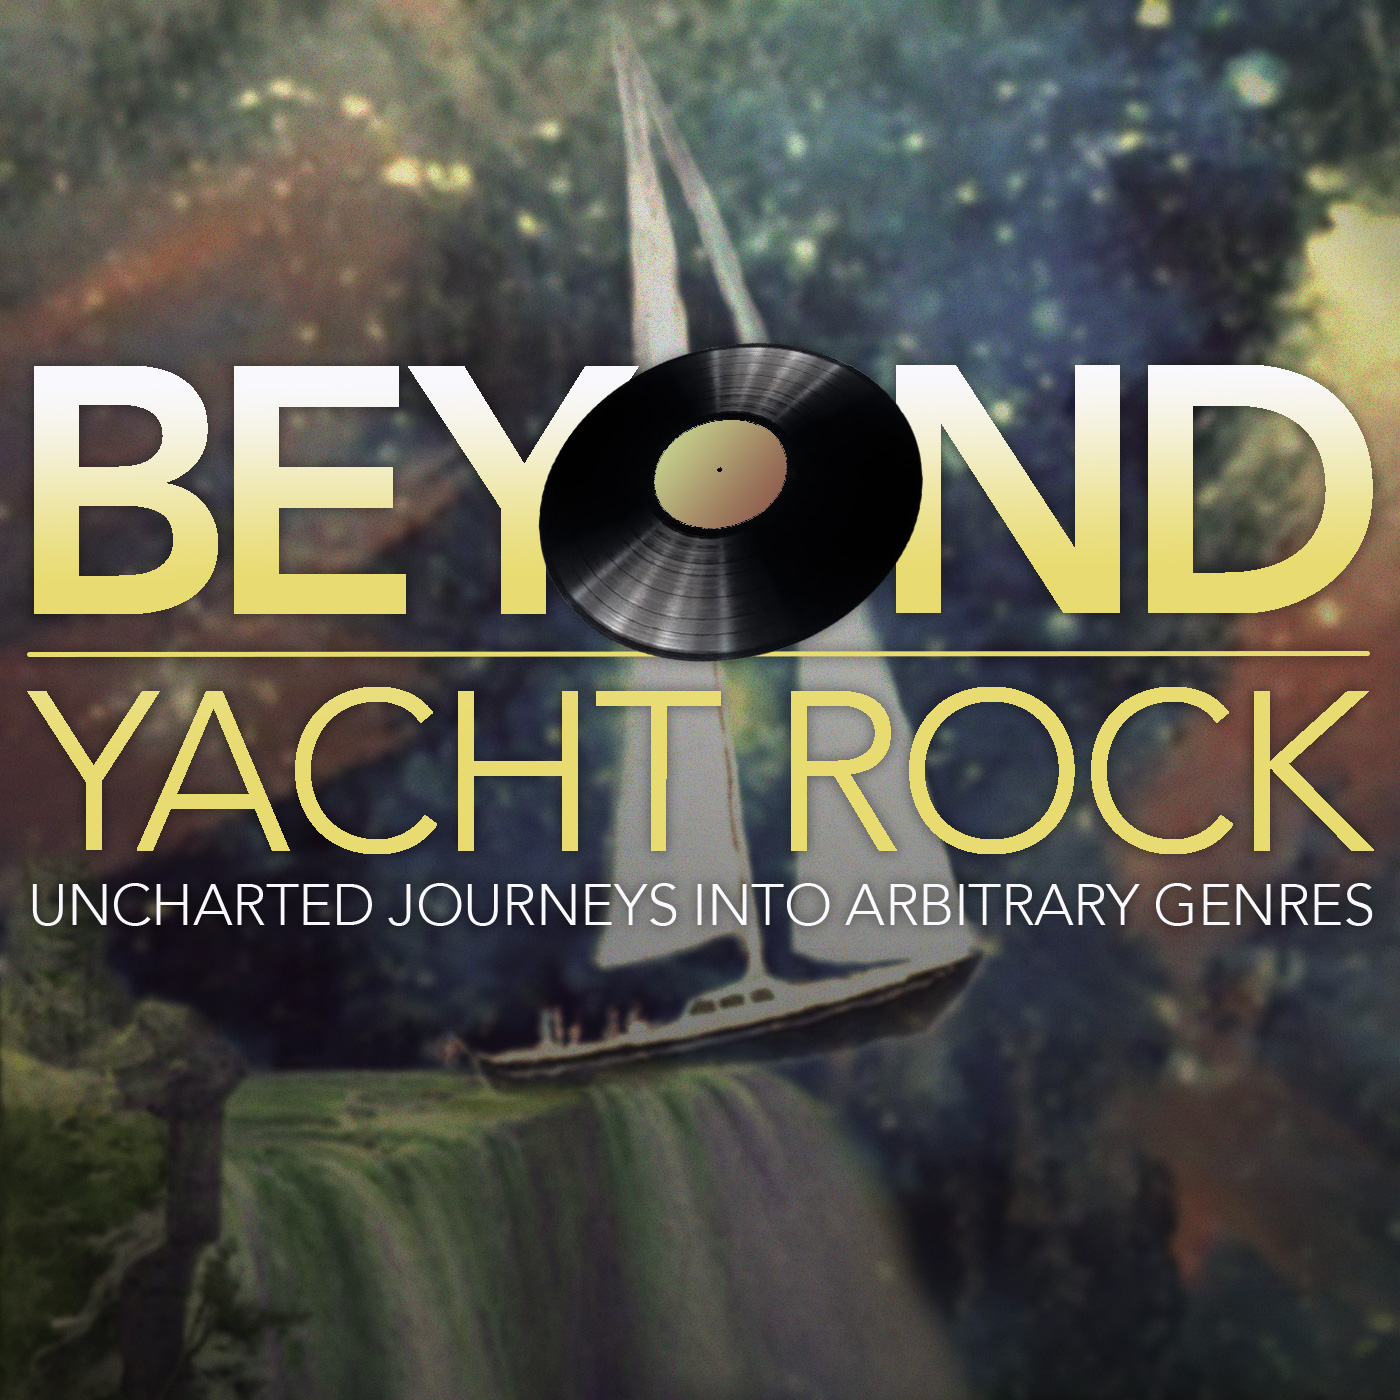 Beyond Yacht Rock Podcast Cover - Square